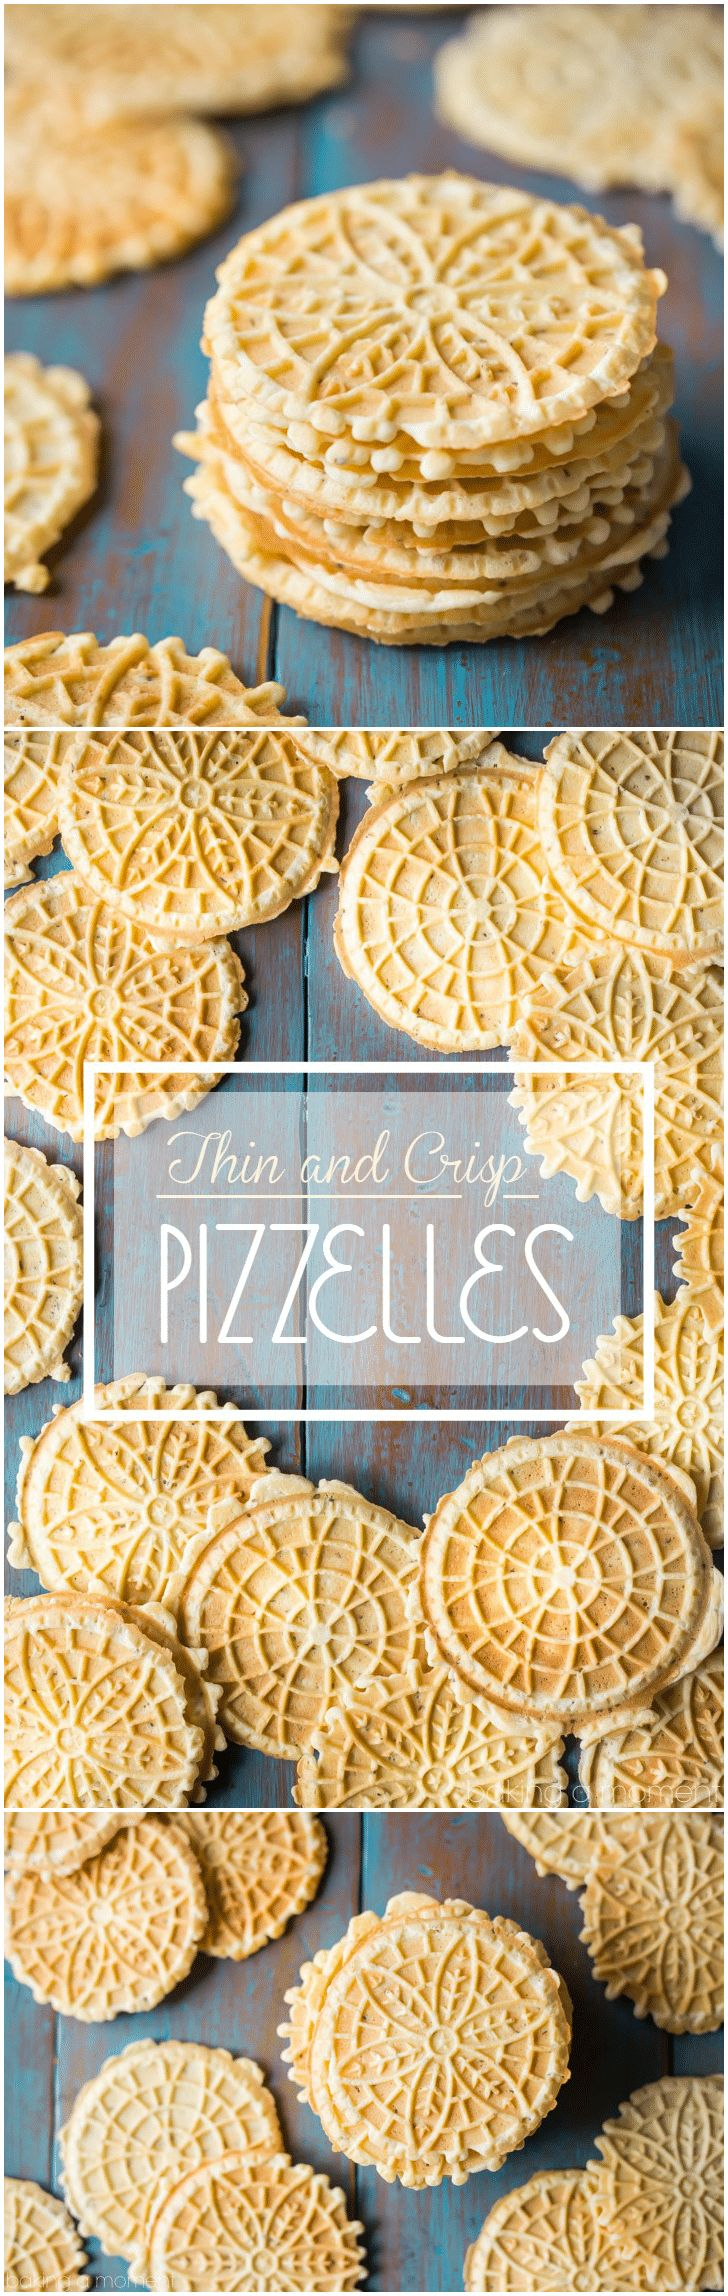 My search is over- this is the PERFECT pizzelle recipe! So thin, so light, so incredibly crisp, with plenty of authentic anise flavor. These are just like my great-aunt used to make- maybe even better! food desserts cookies via @bakingamoment